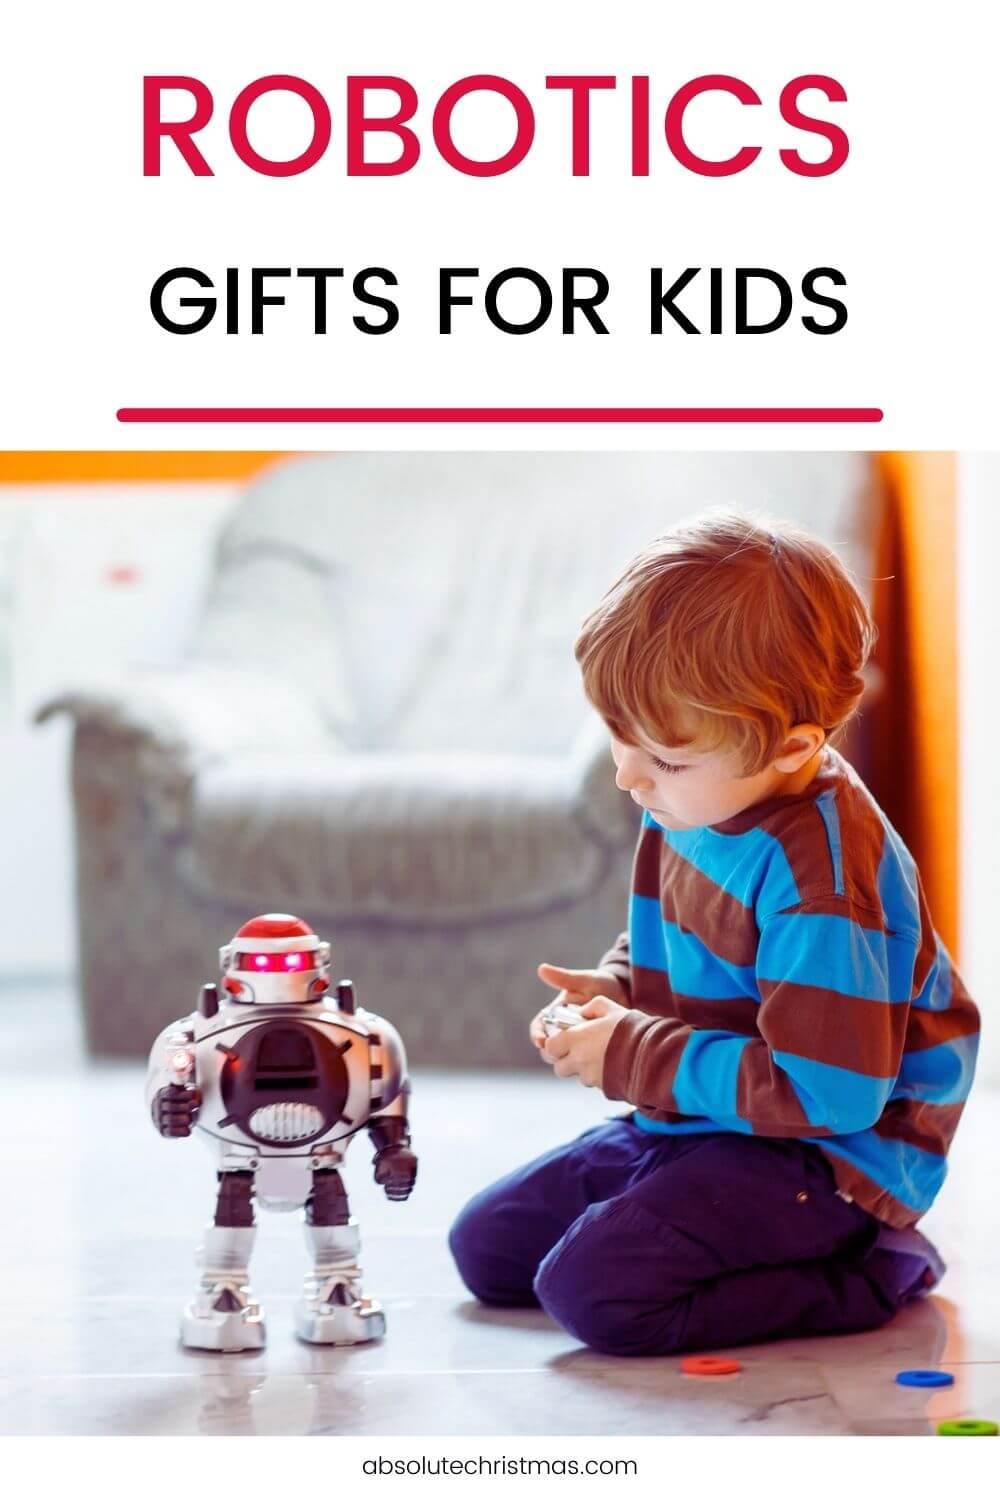 Robotics Gifts for Kids - Presents for Robot Fans